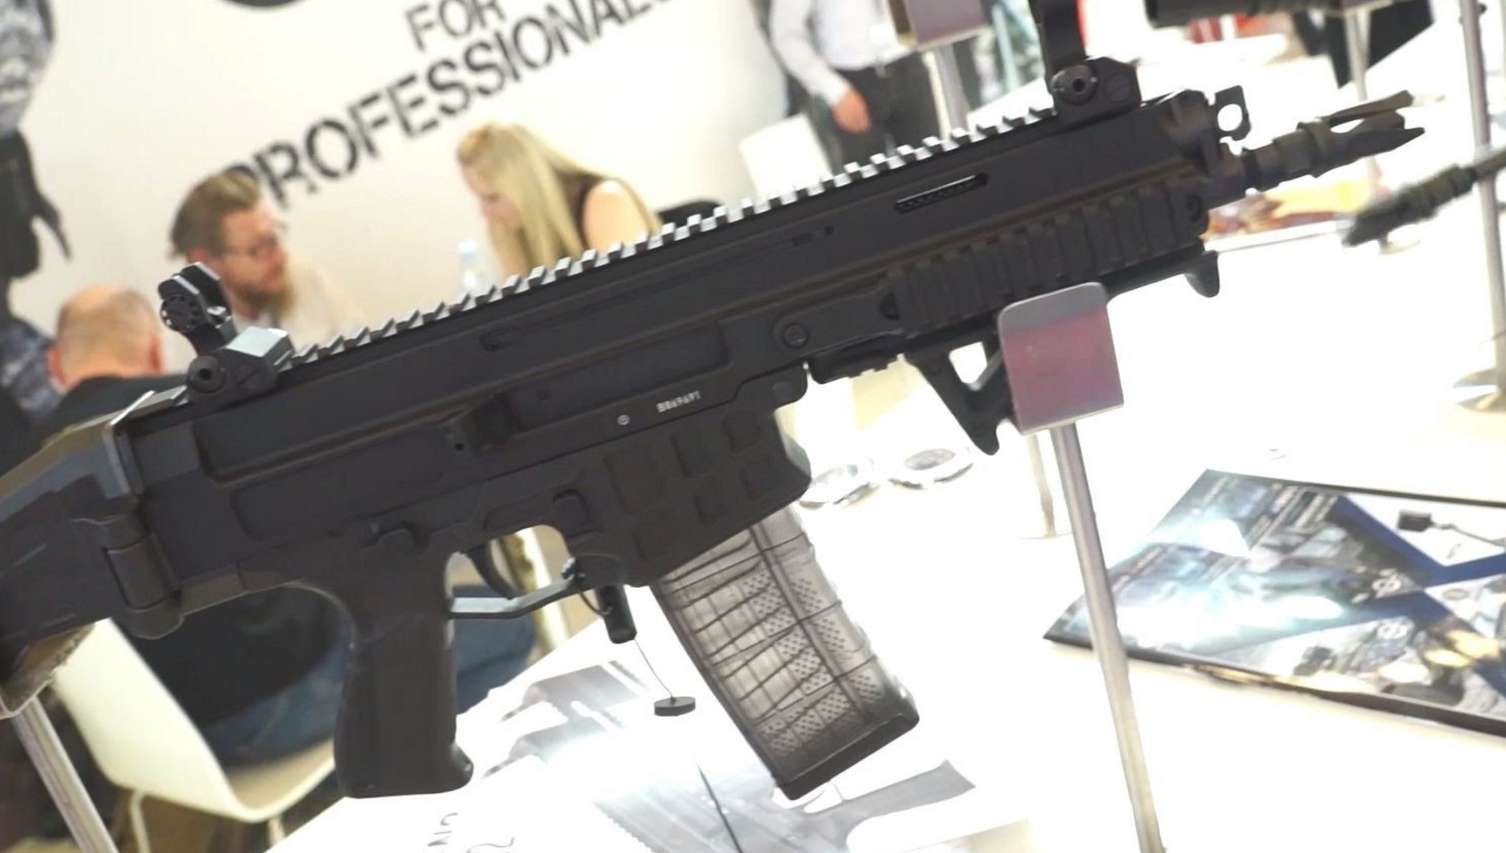 France S Gign Orders Cz 806 Bren 2 In 7 62 X 39 Mm